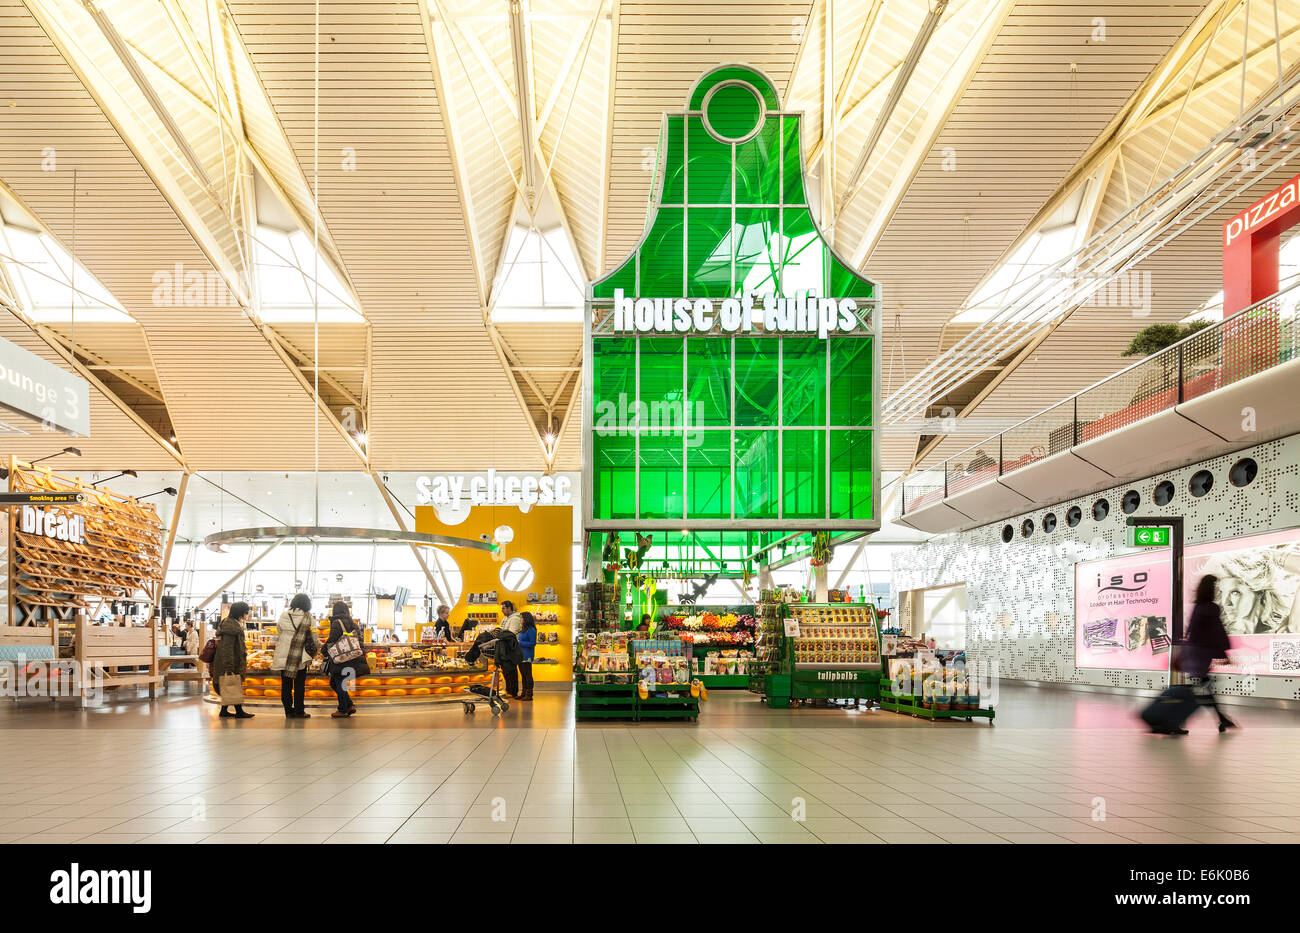 Amsterdam Schiphol Airport departure lounge 3 with Tulips Cheese souvenir souvenirs shop shops store stores passengers - Stock Image